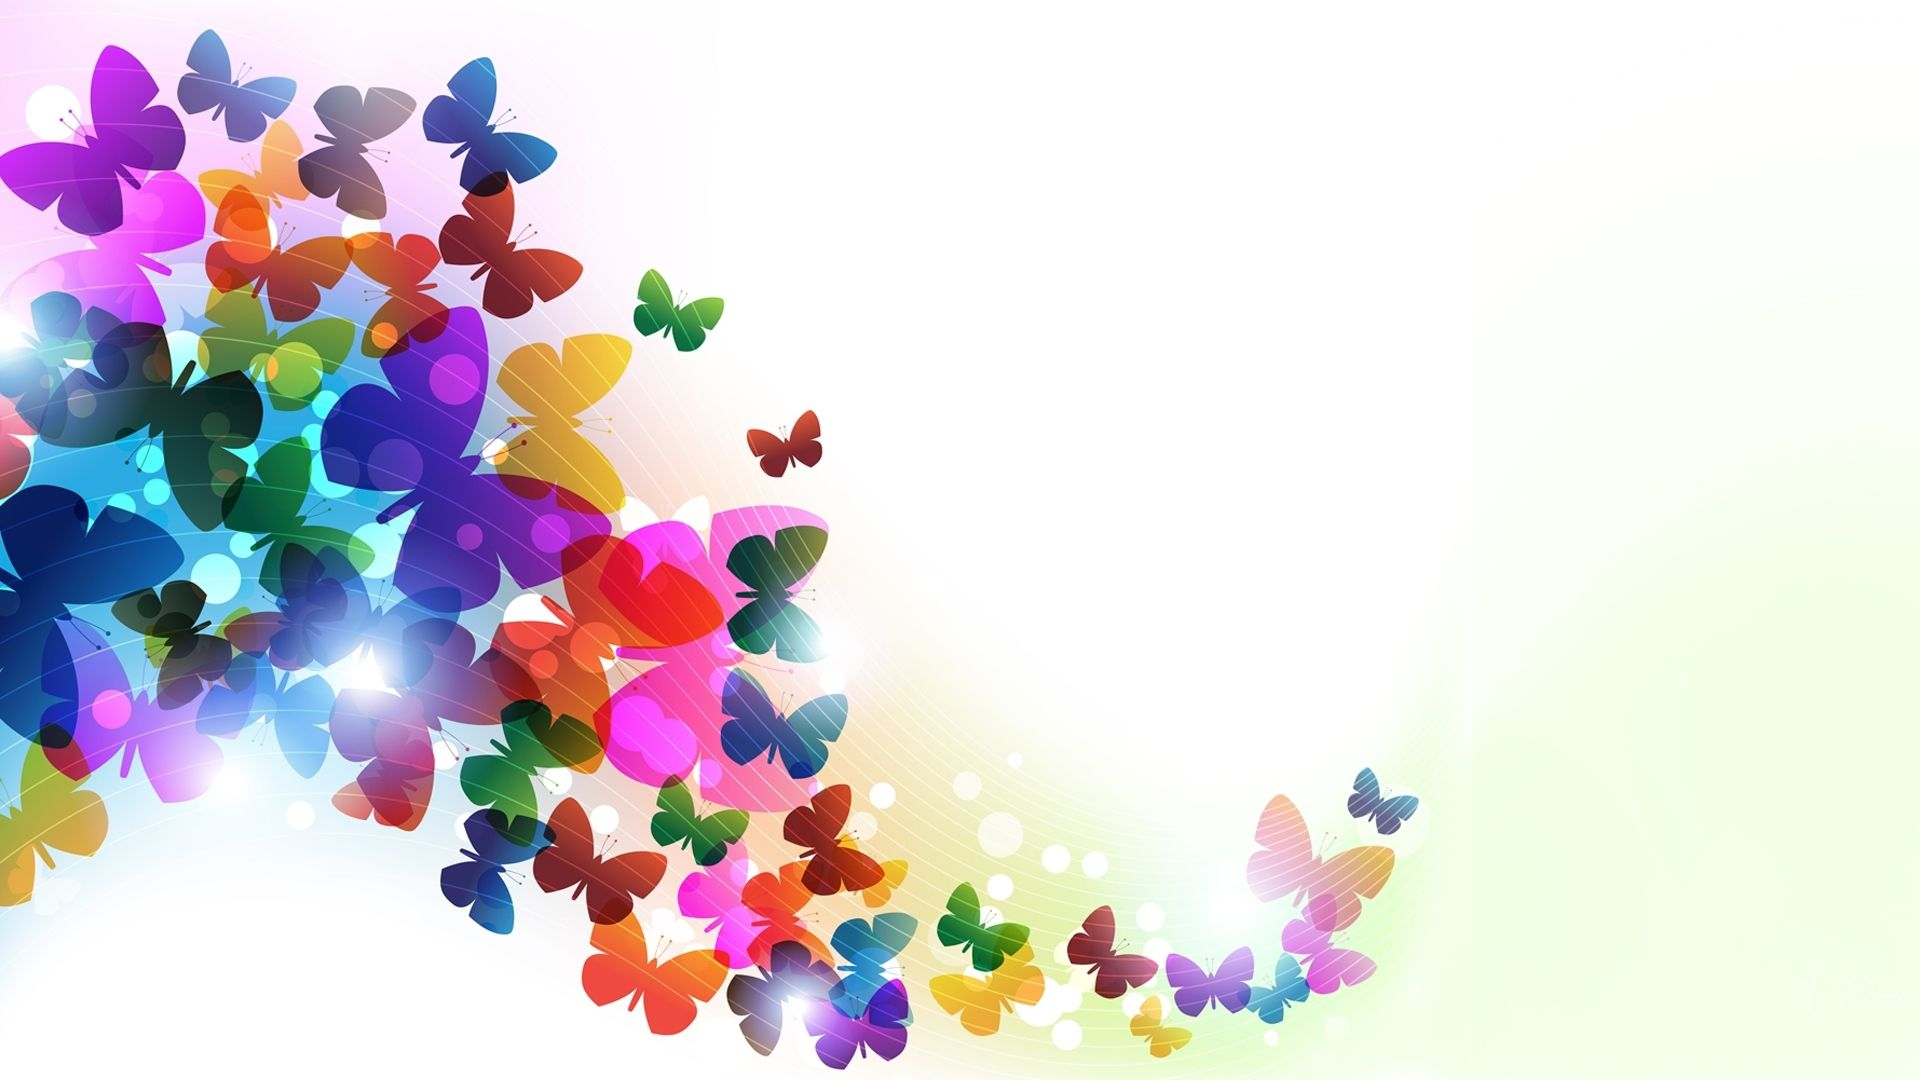 Cute Butterflies Hd Wallpapers Beautiful Background Pictures For Powerpoint